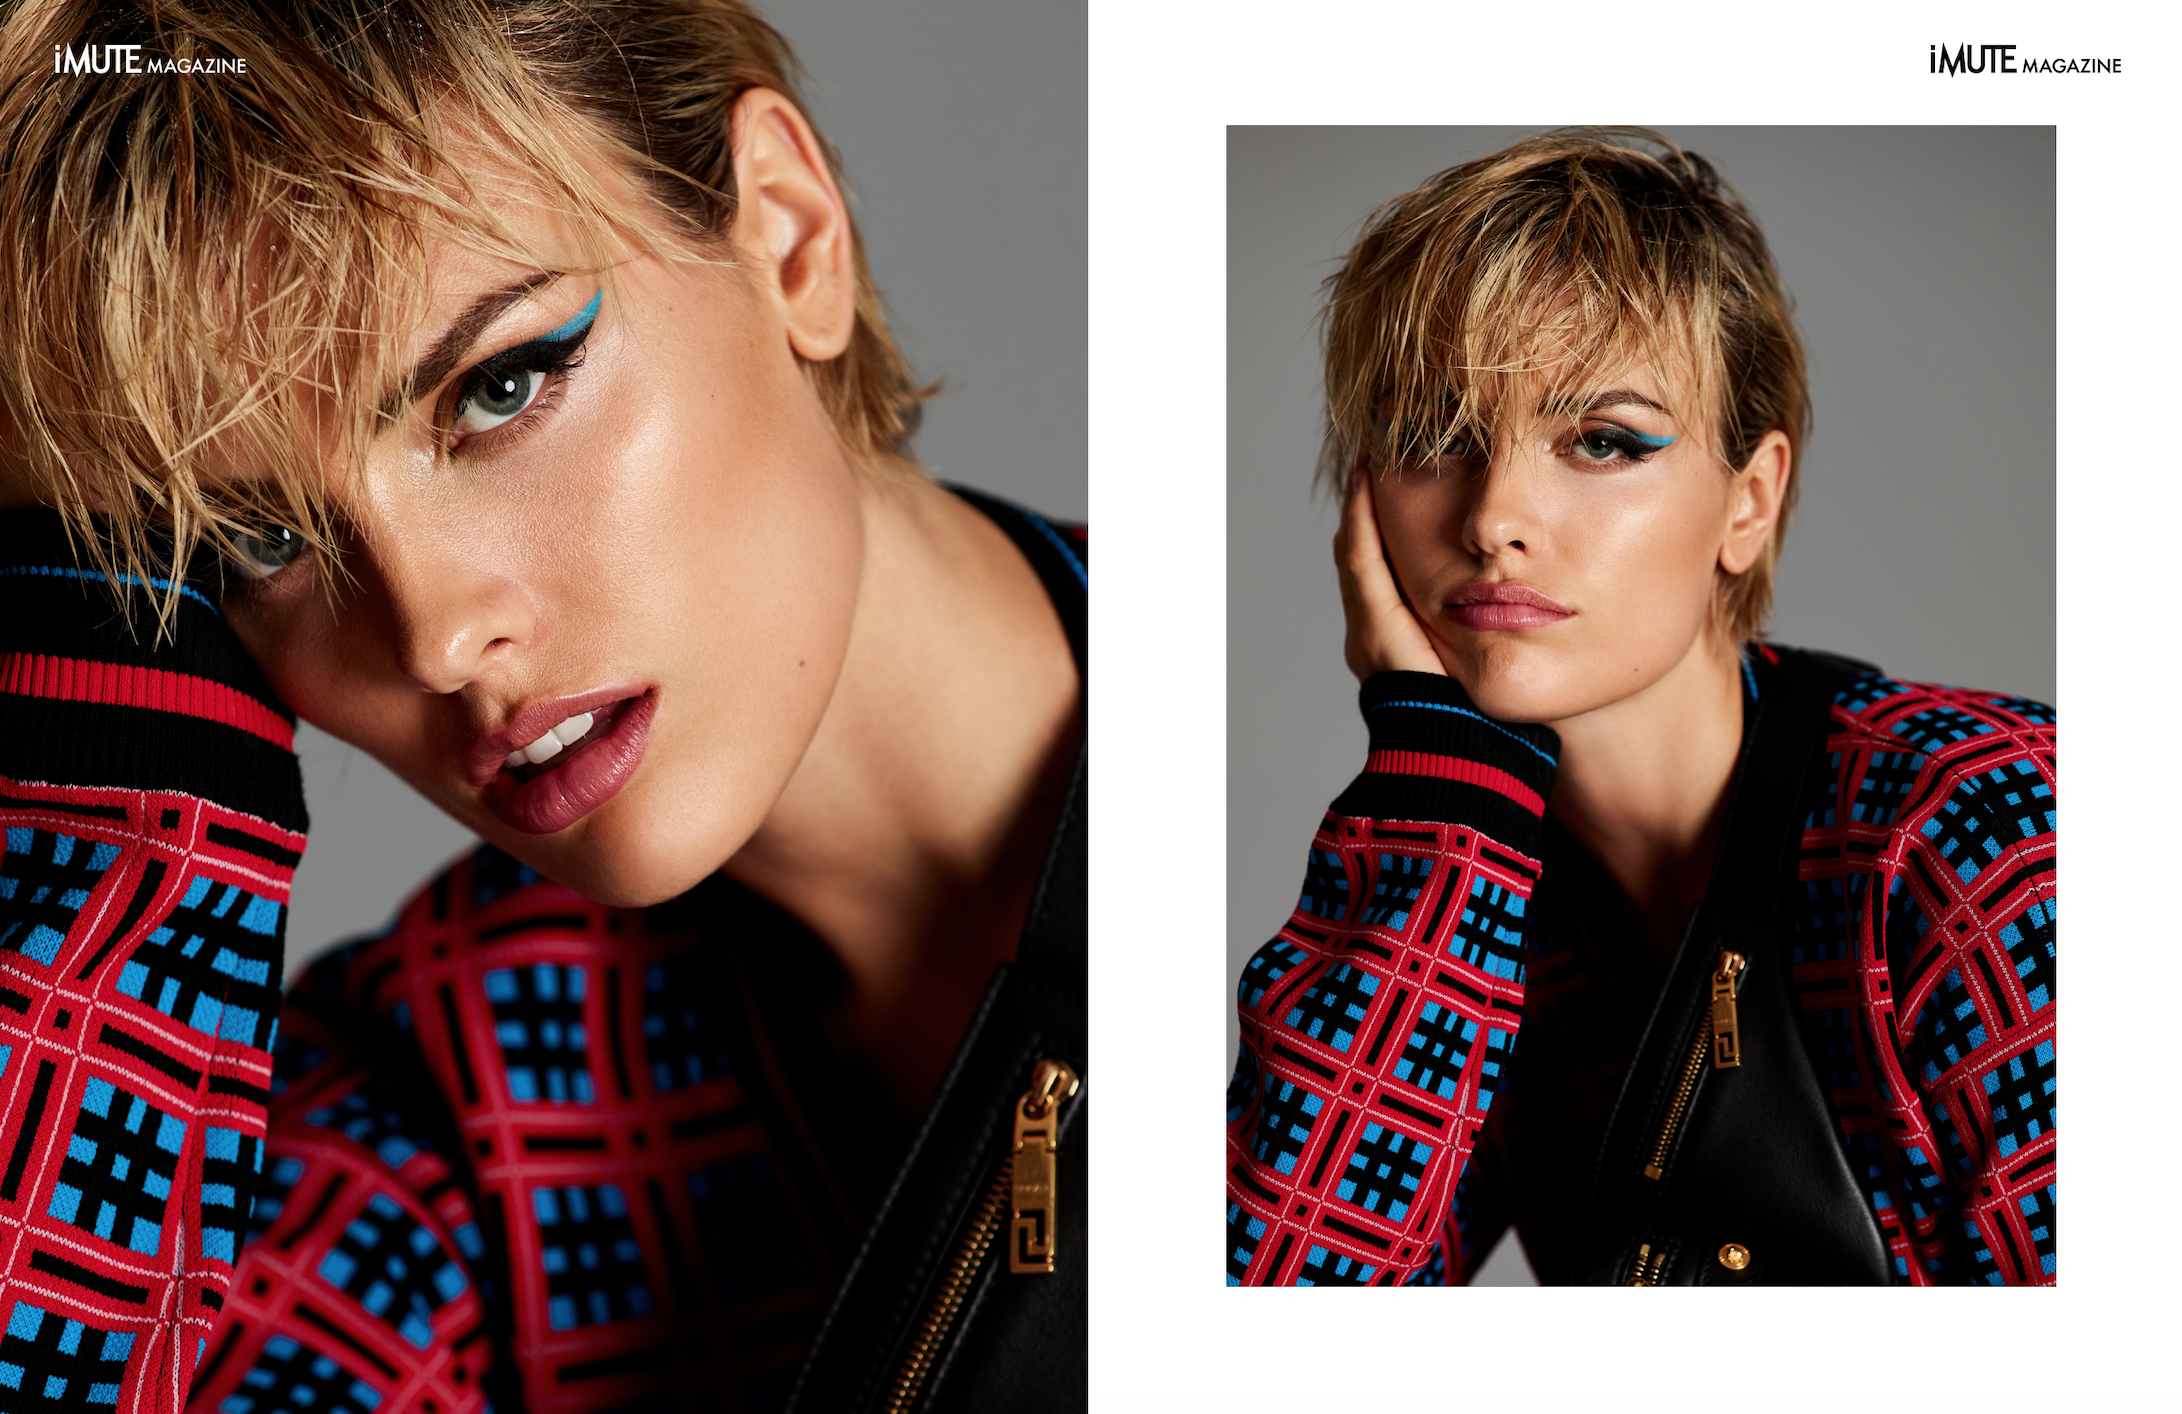 MAKEUP by Fern Madden for IMute Magazine